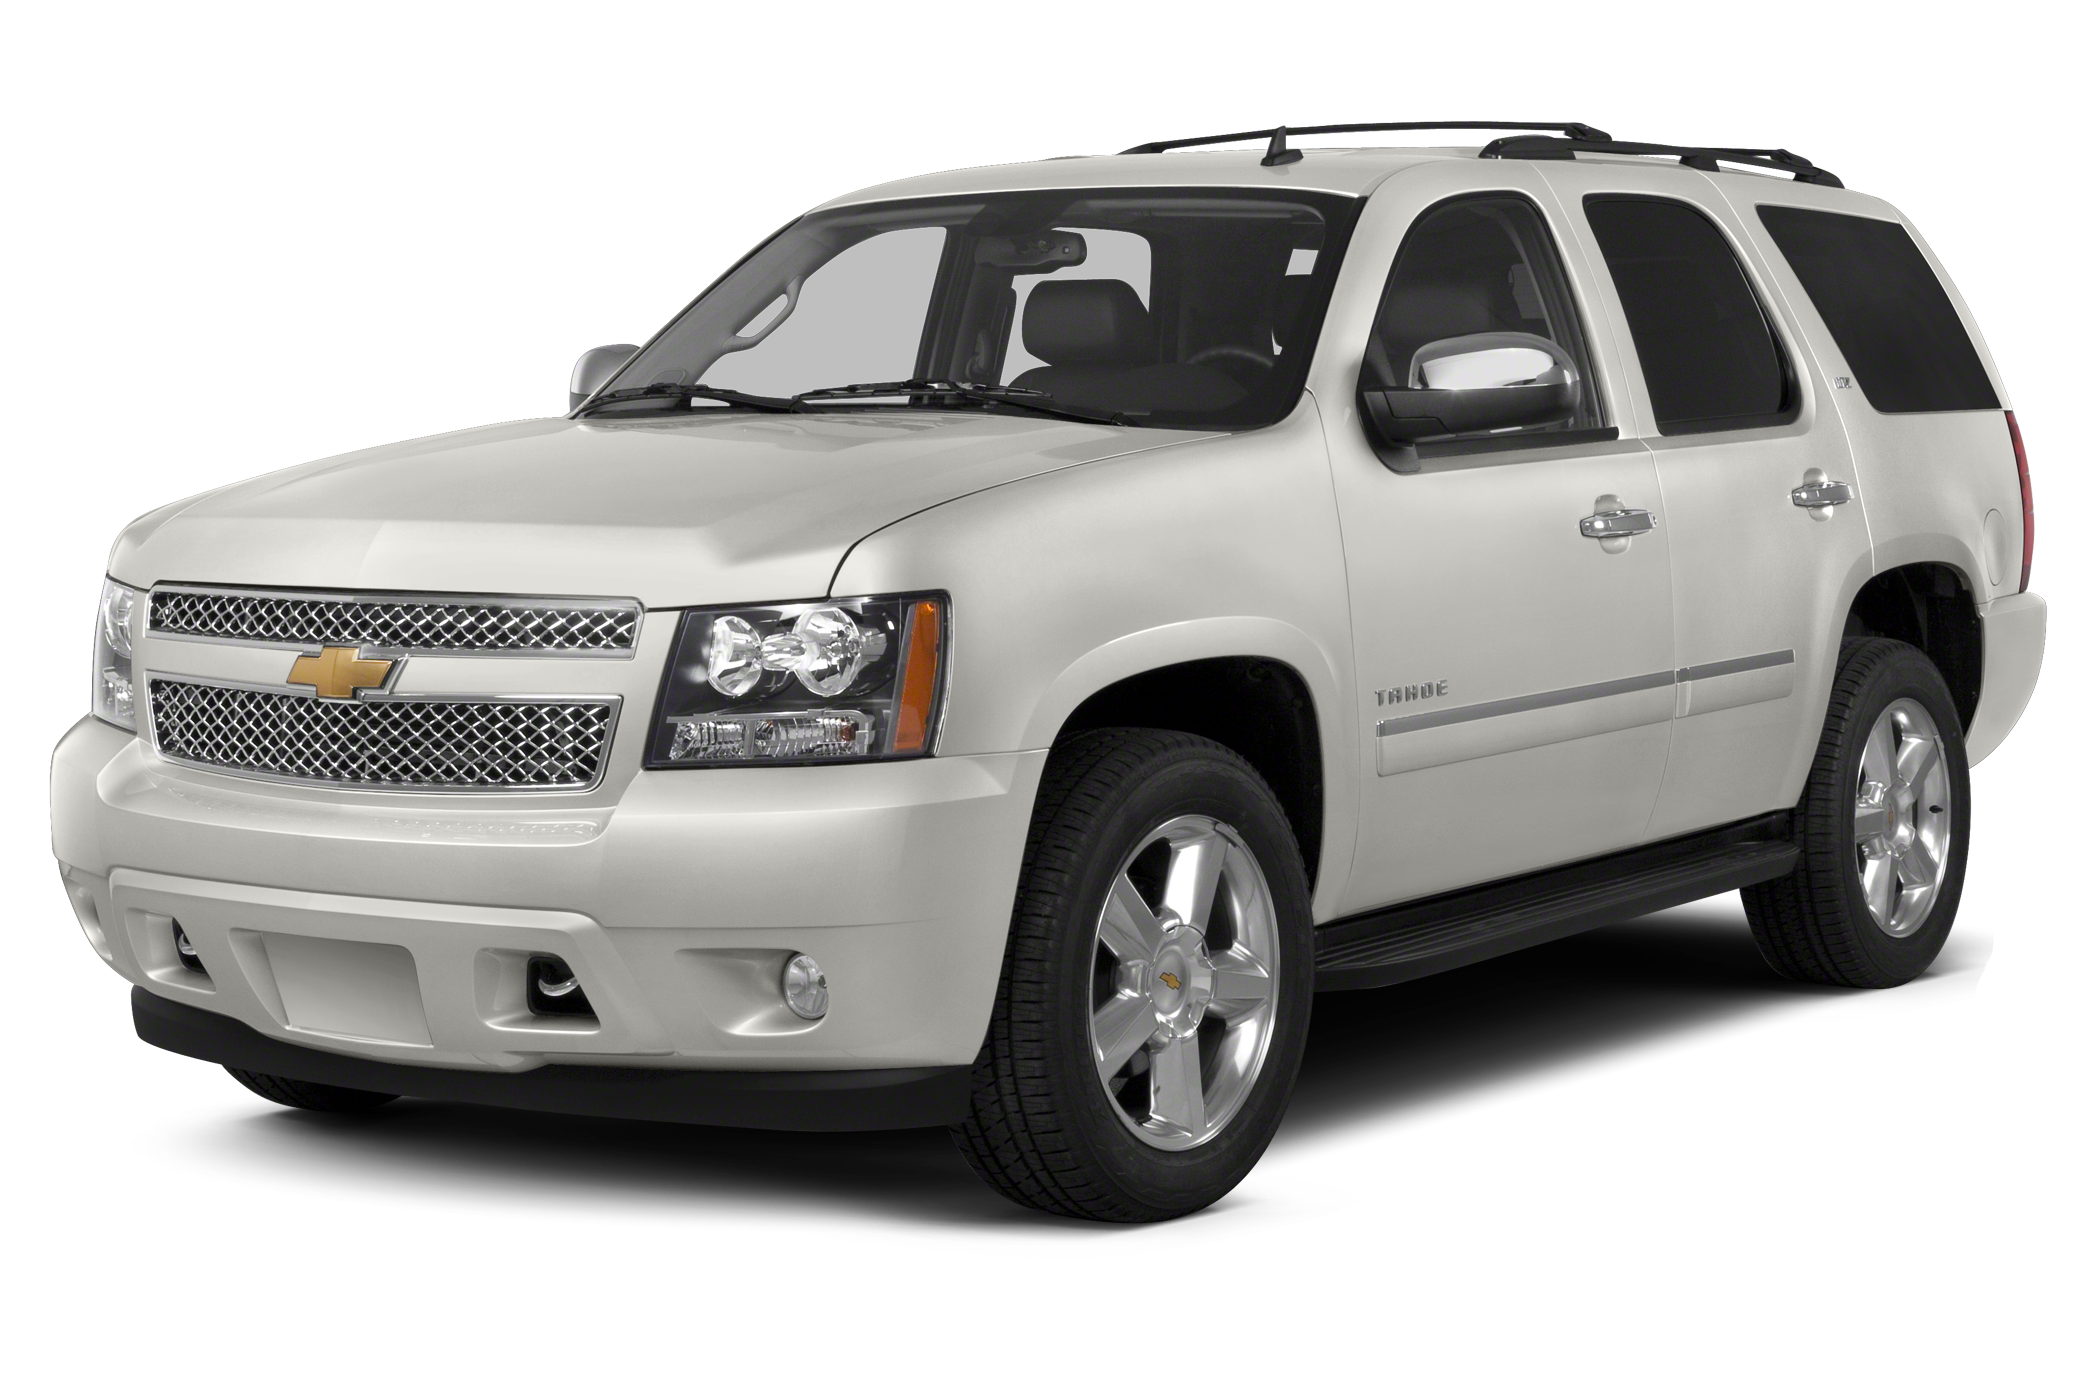 2013 Chevrolet Tahoe Reviews, Specs and Prices - Cars.com - Holiday